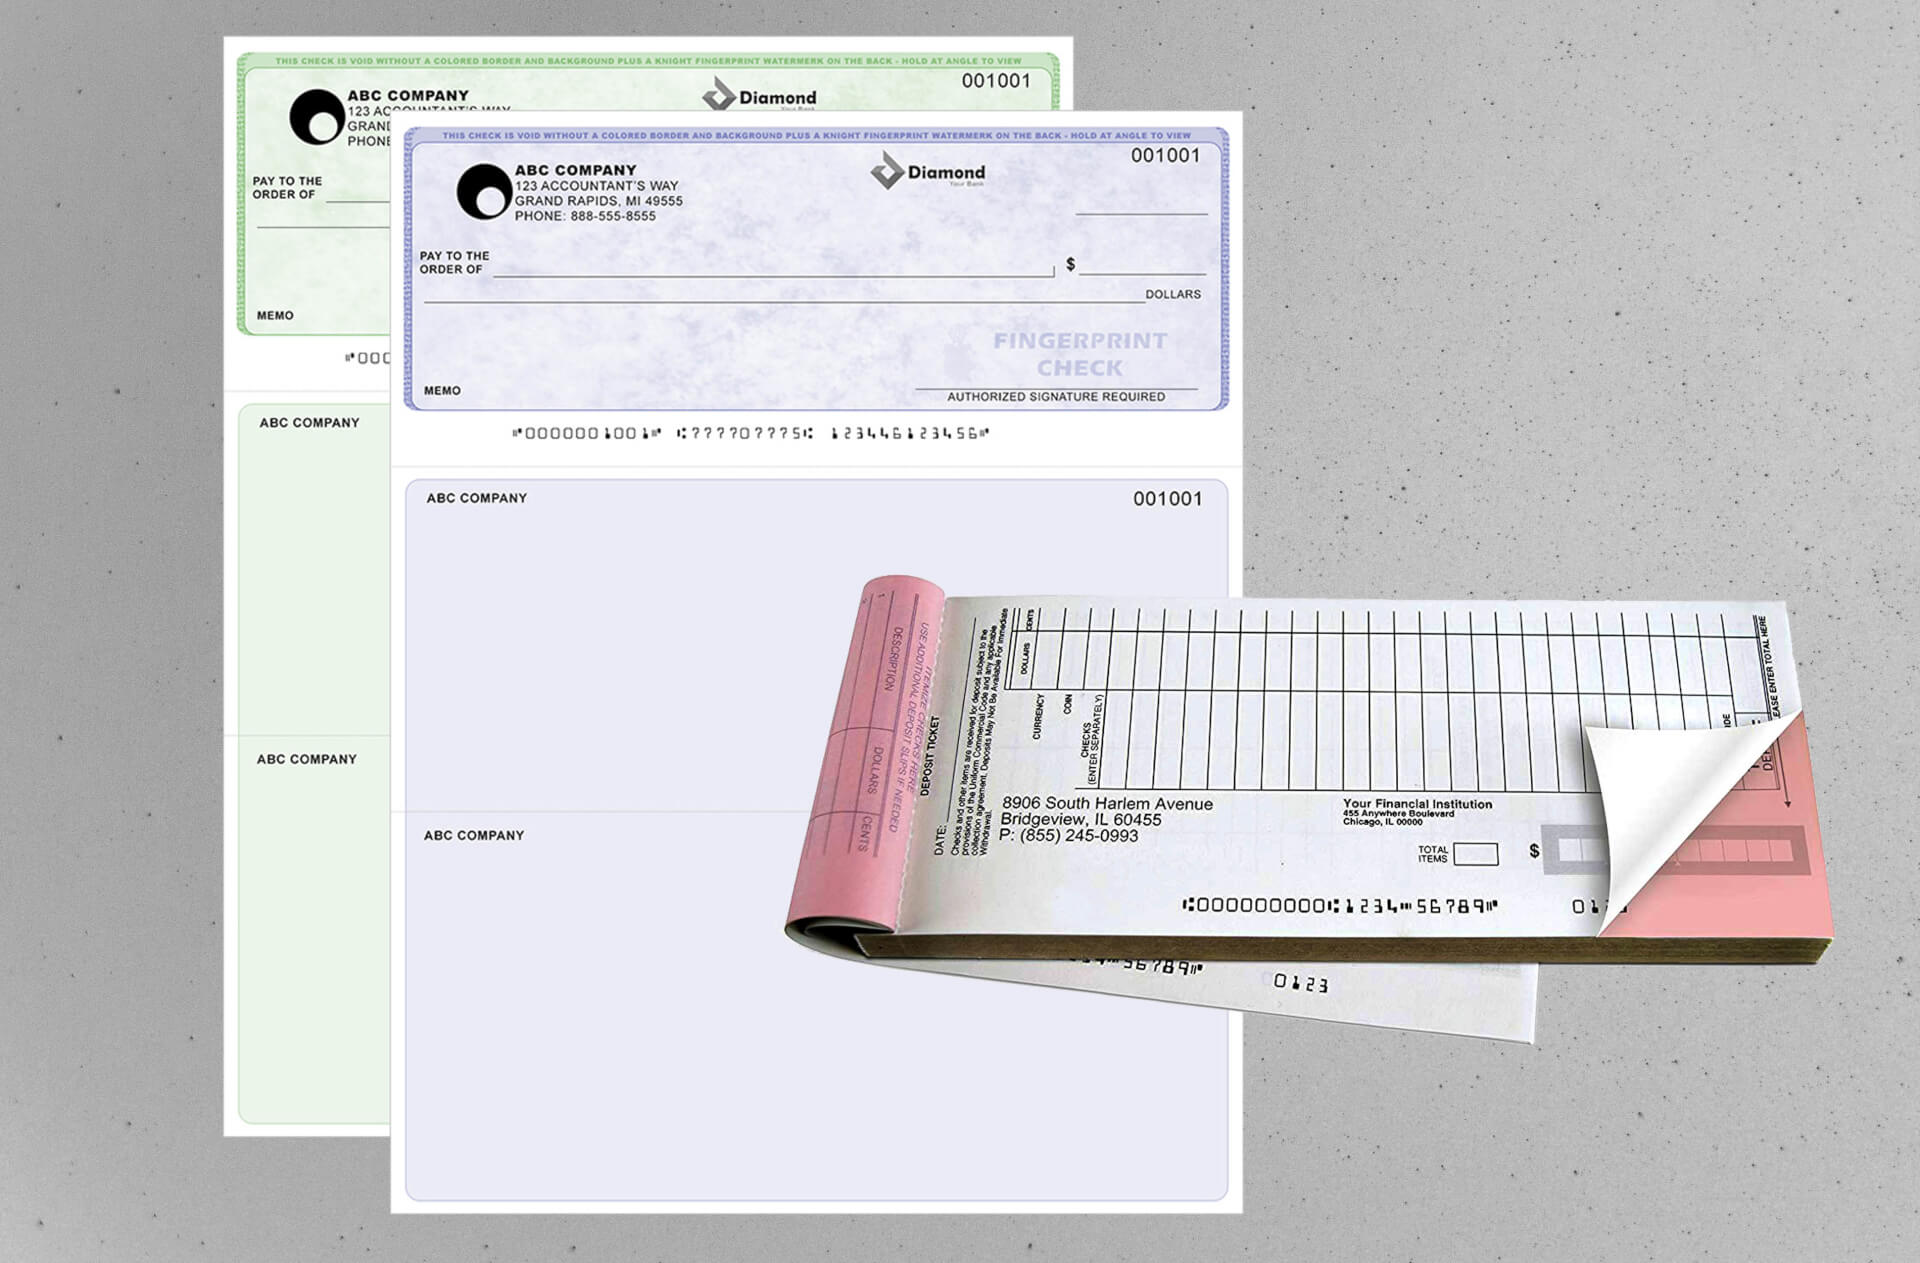 Checks & </br>Deposit Slips